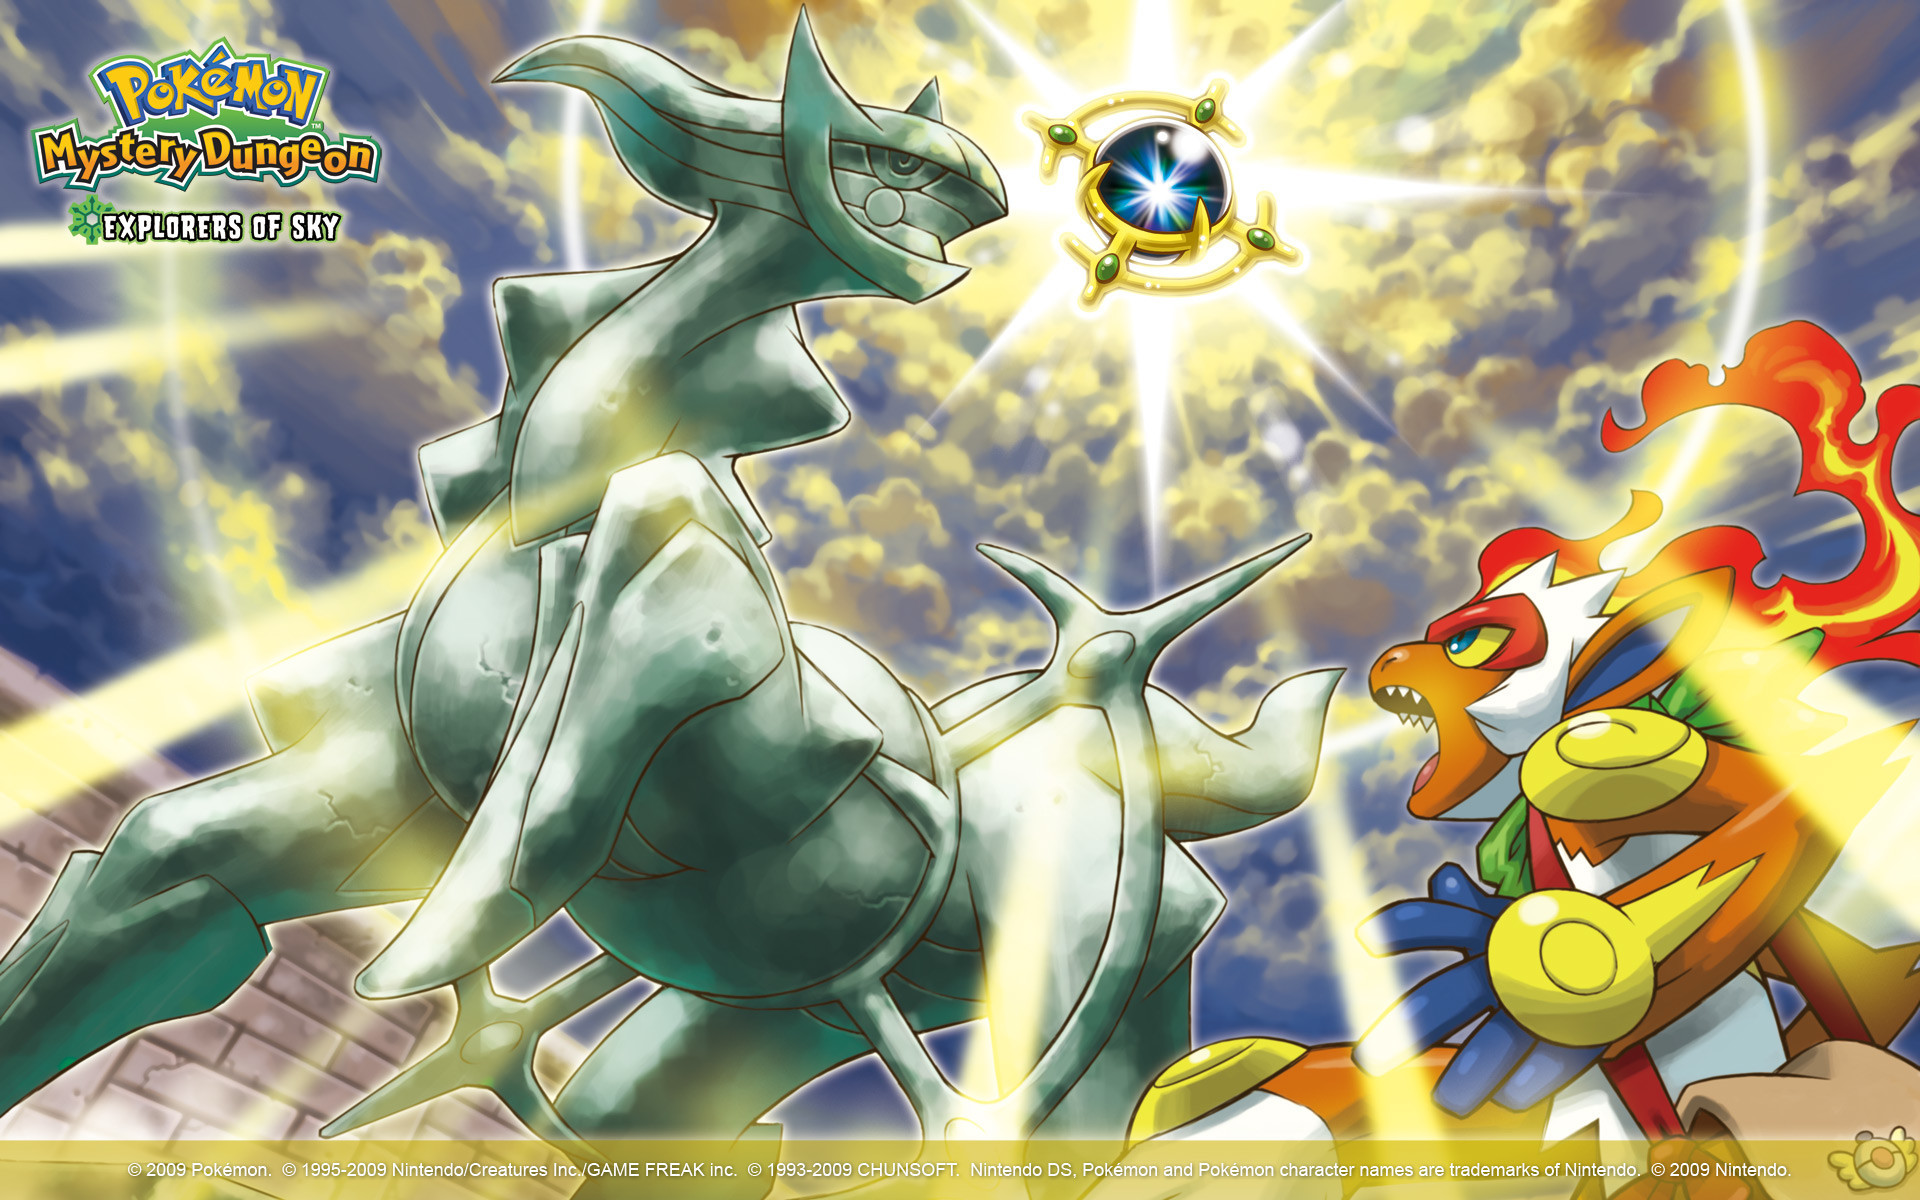 1920x1200  Pokémon Mystery Dungeon: Explorers of Sky Wallpaper 2